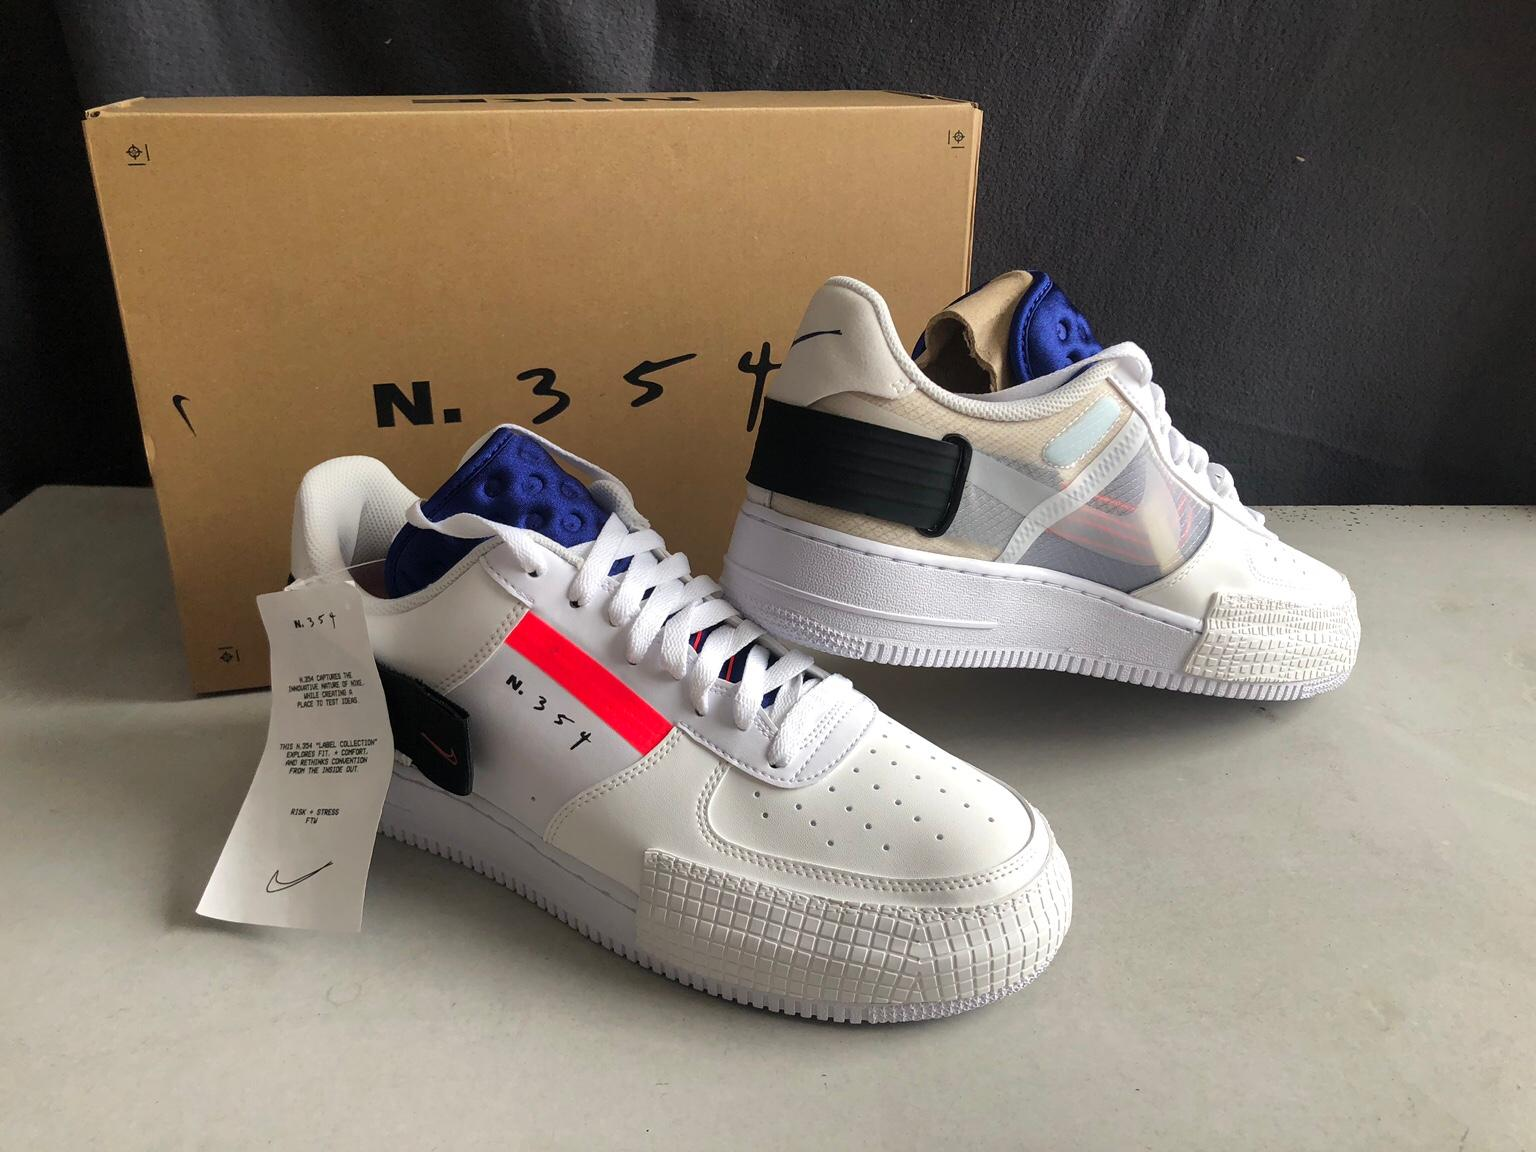 Nike Air Force 1 Type N. 354 Summit Gr. 45